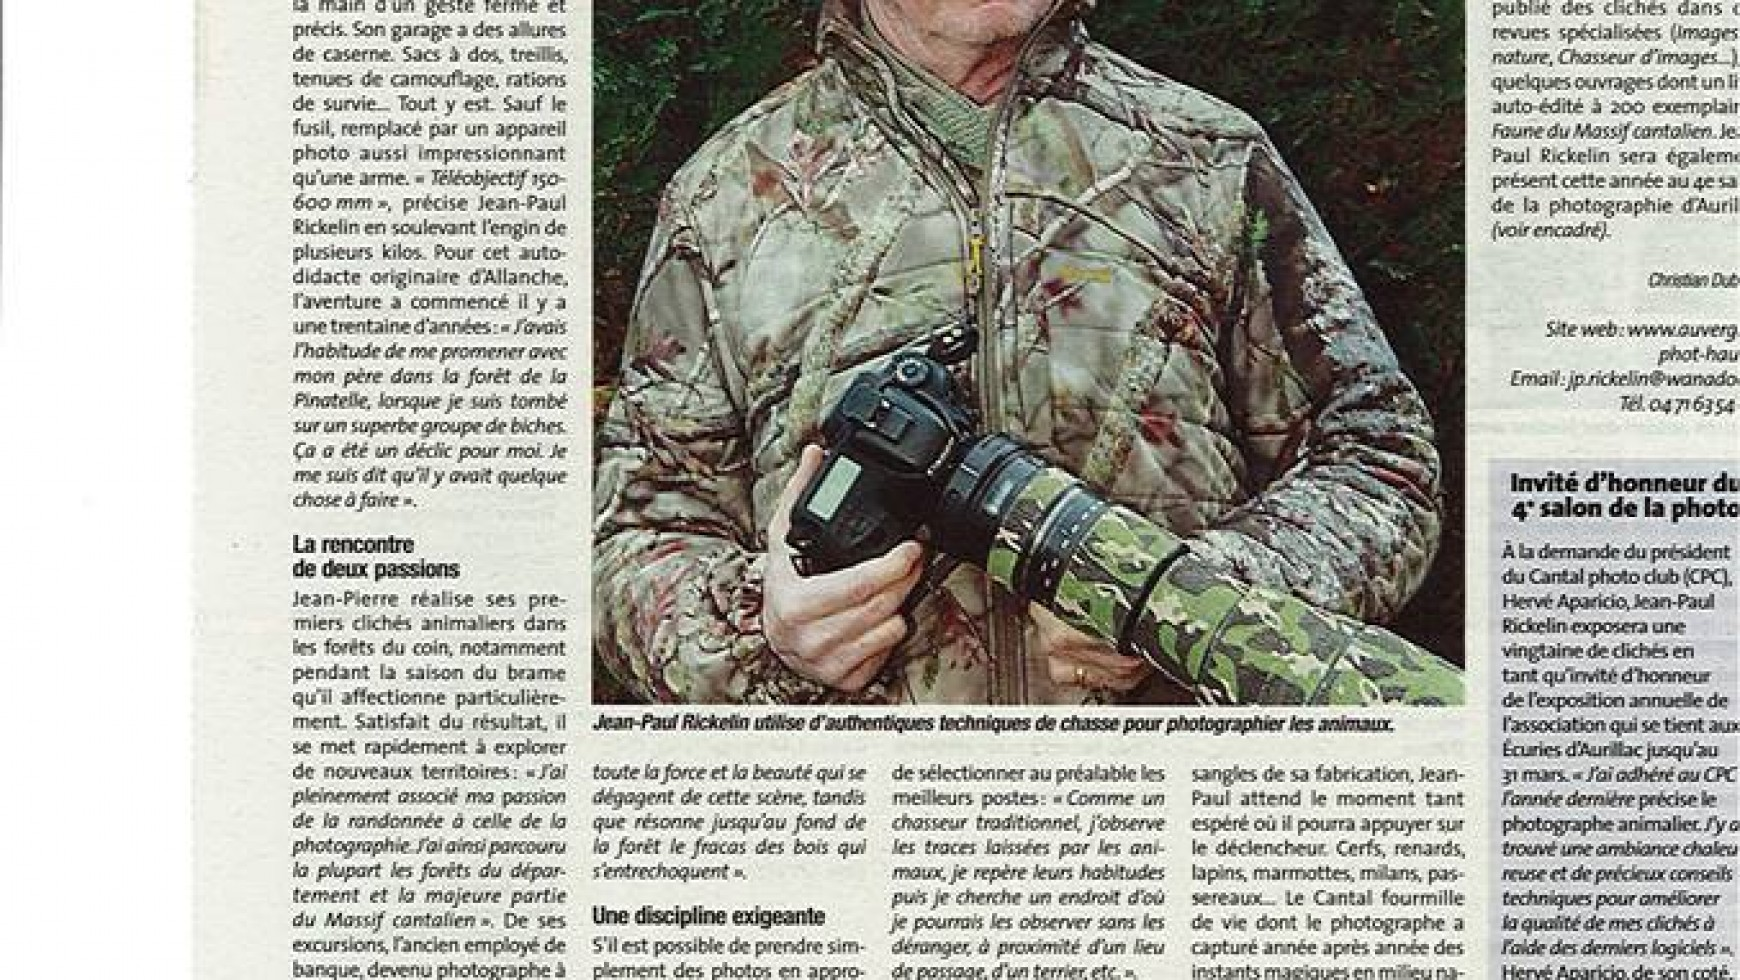 Jean-Paul Rickelin, le chass'images